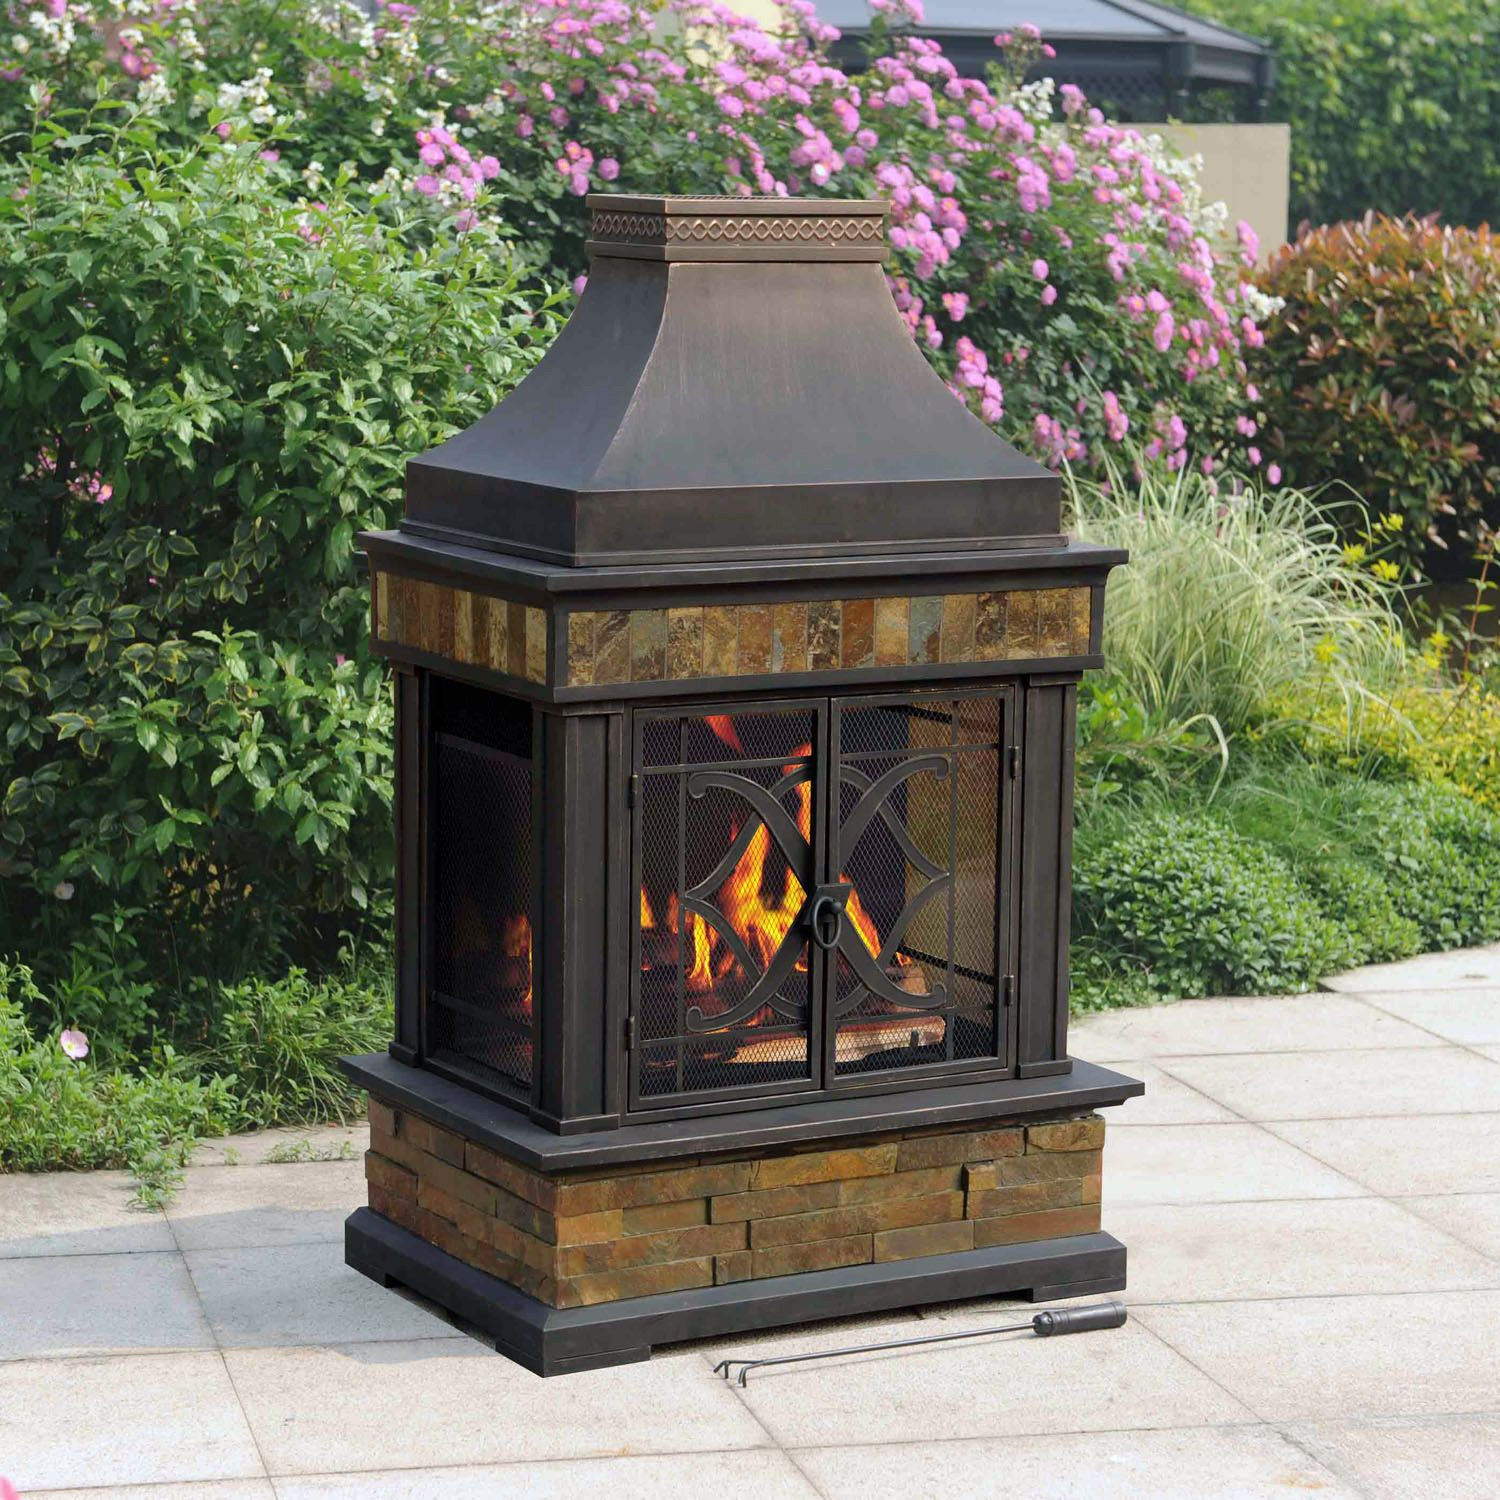 Fireplace Fire Pit  Chimney Outdoor Fire Pit